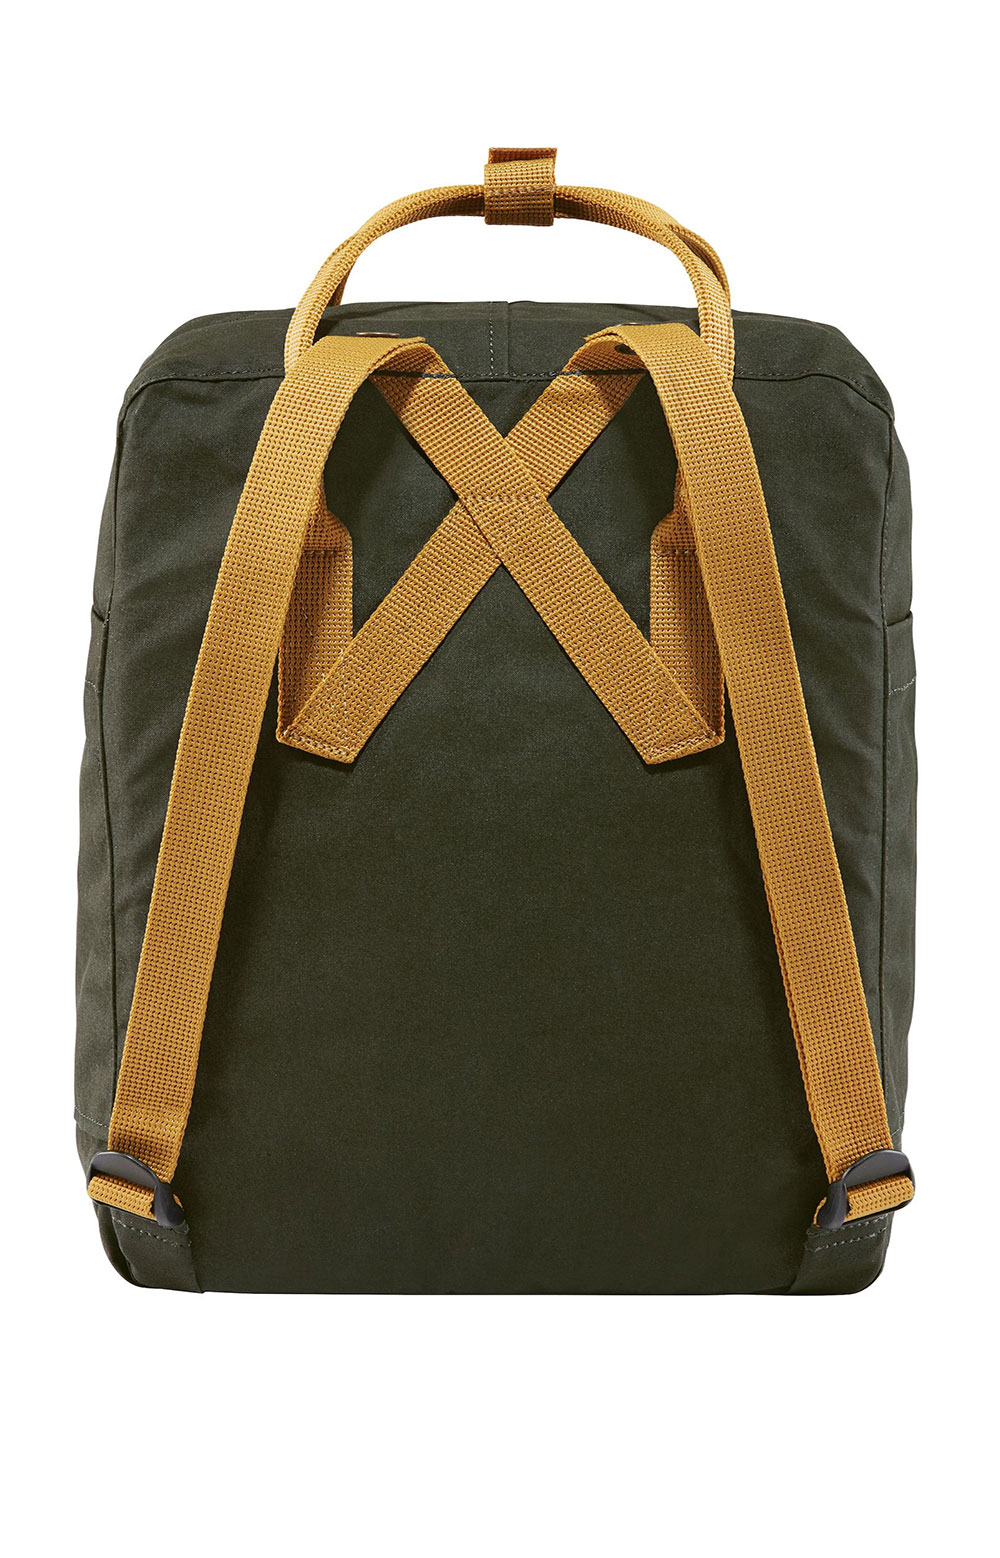 Kanken Backpack - Deep Forest/Acorn  3